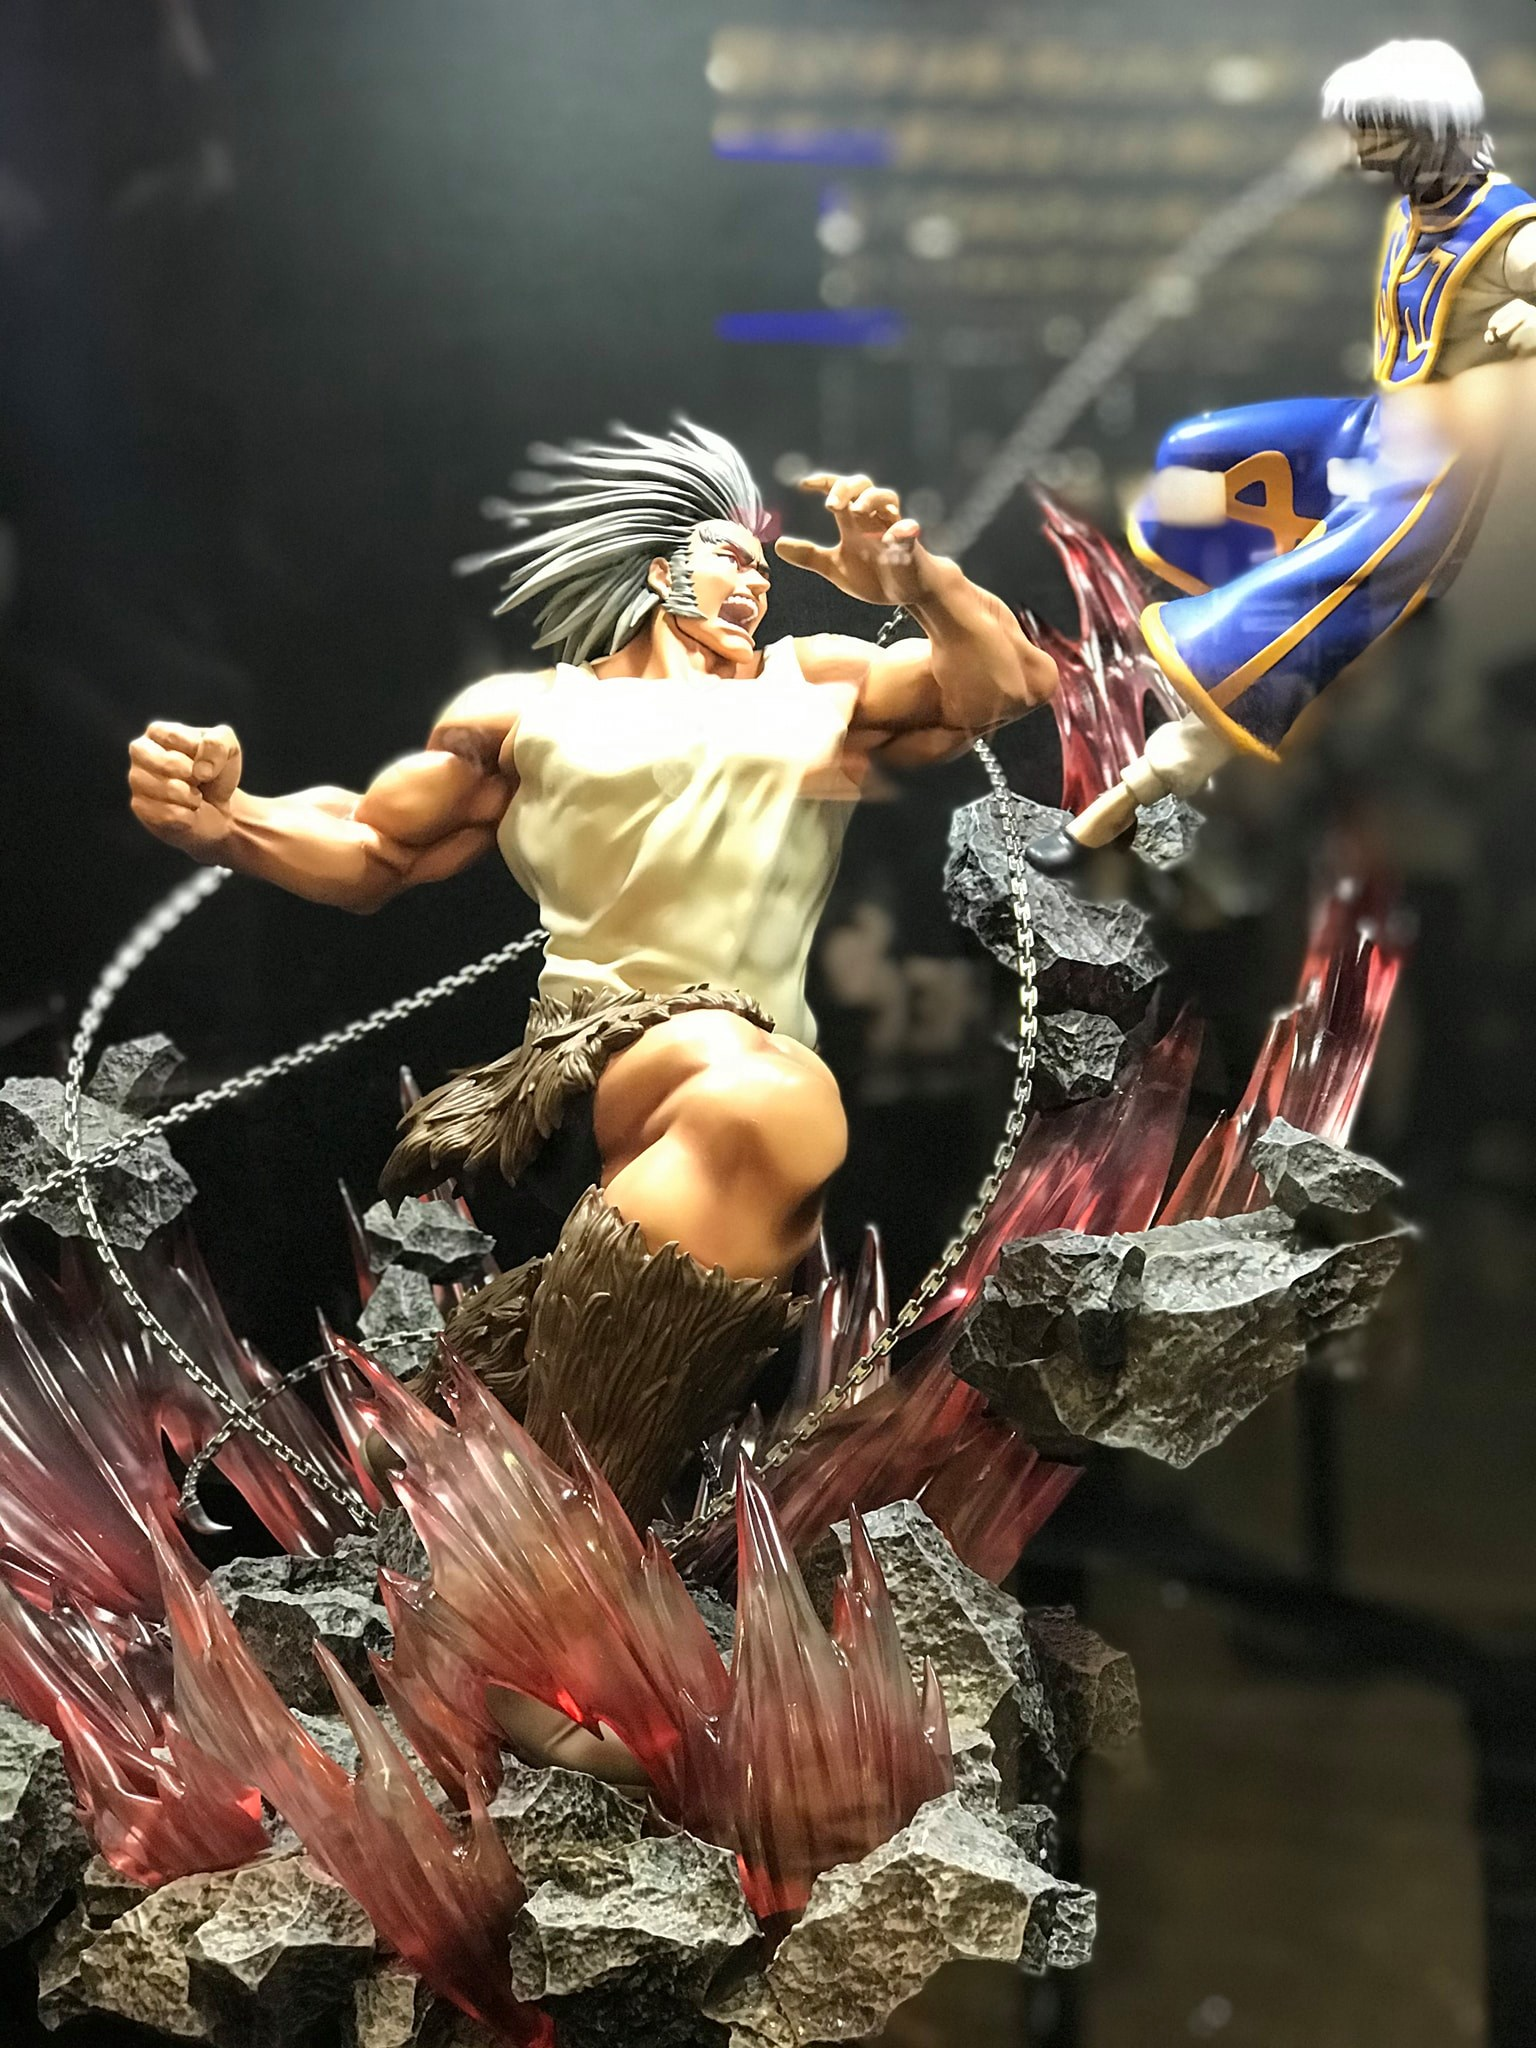 Hex Collectibles Kurapika vs Uvogin Statue